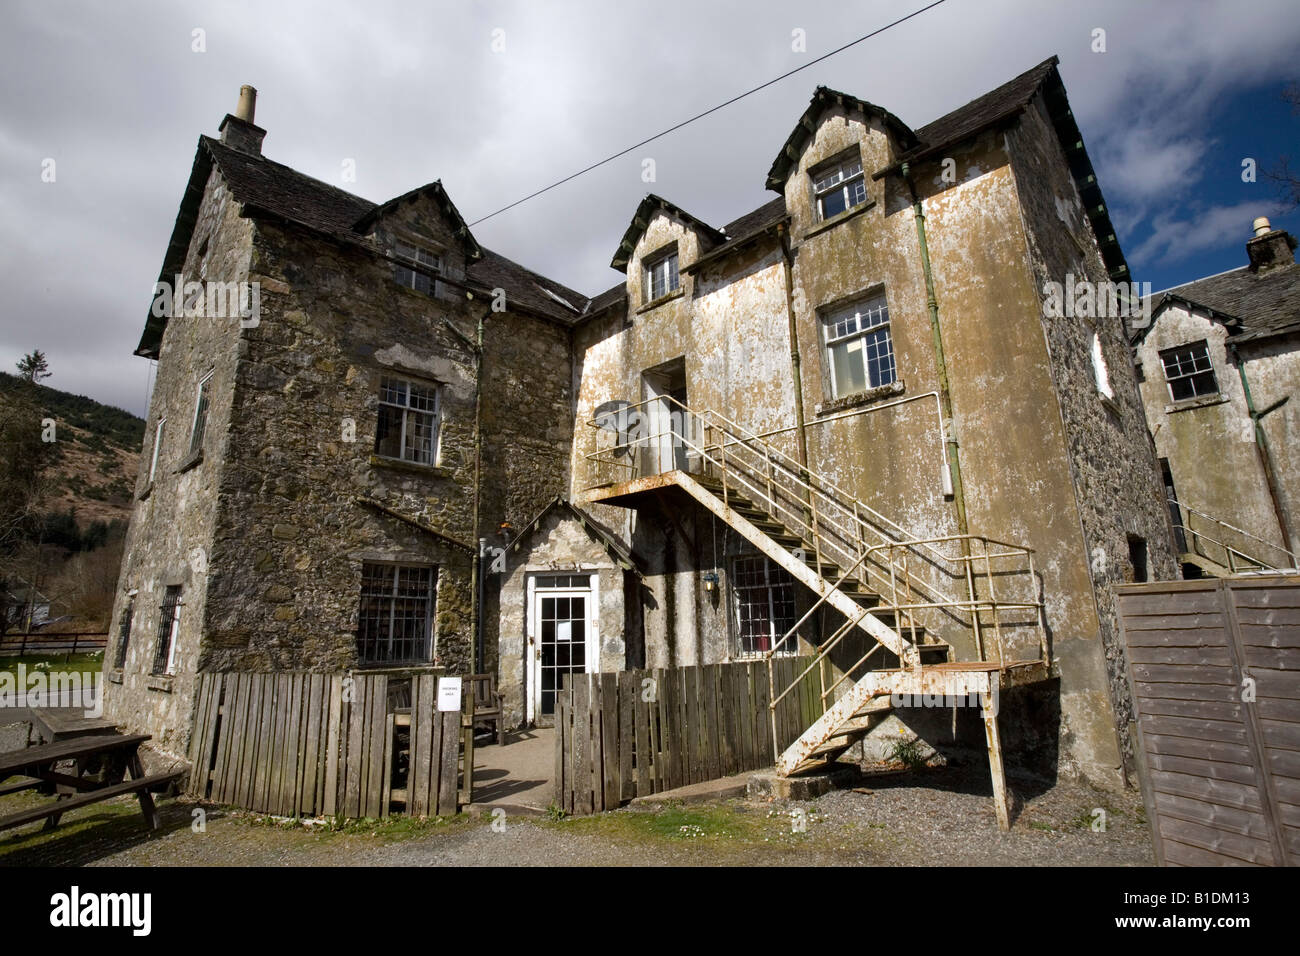 The Drovers Lodge near Loch Lomond is a famous stop on the way to the Northen Highlands in Scotland. - Stock Image